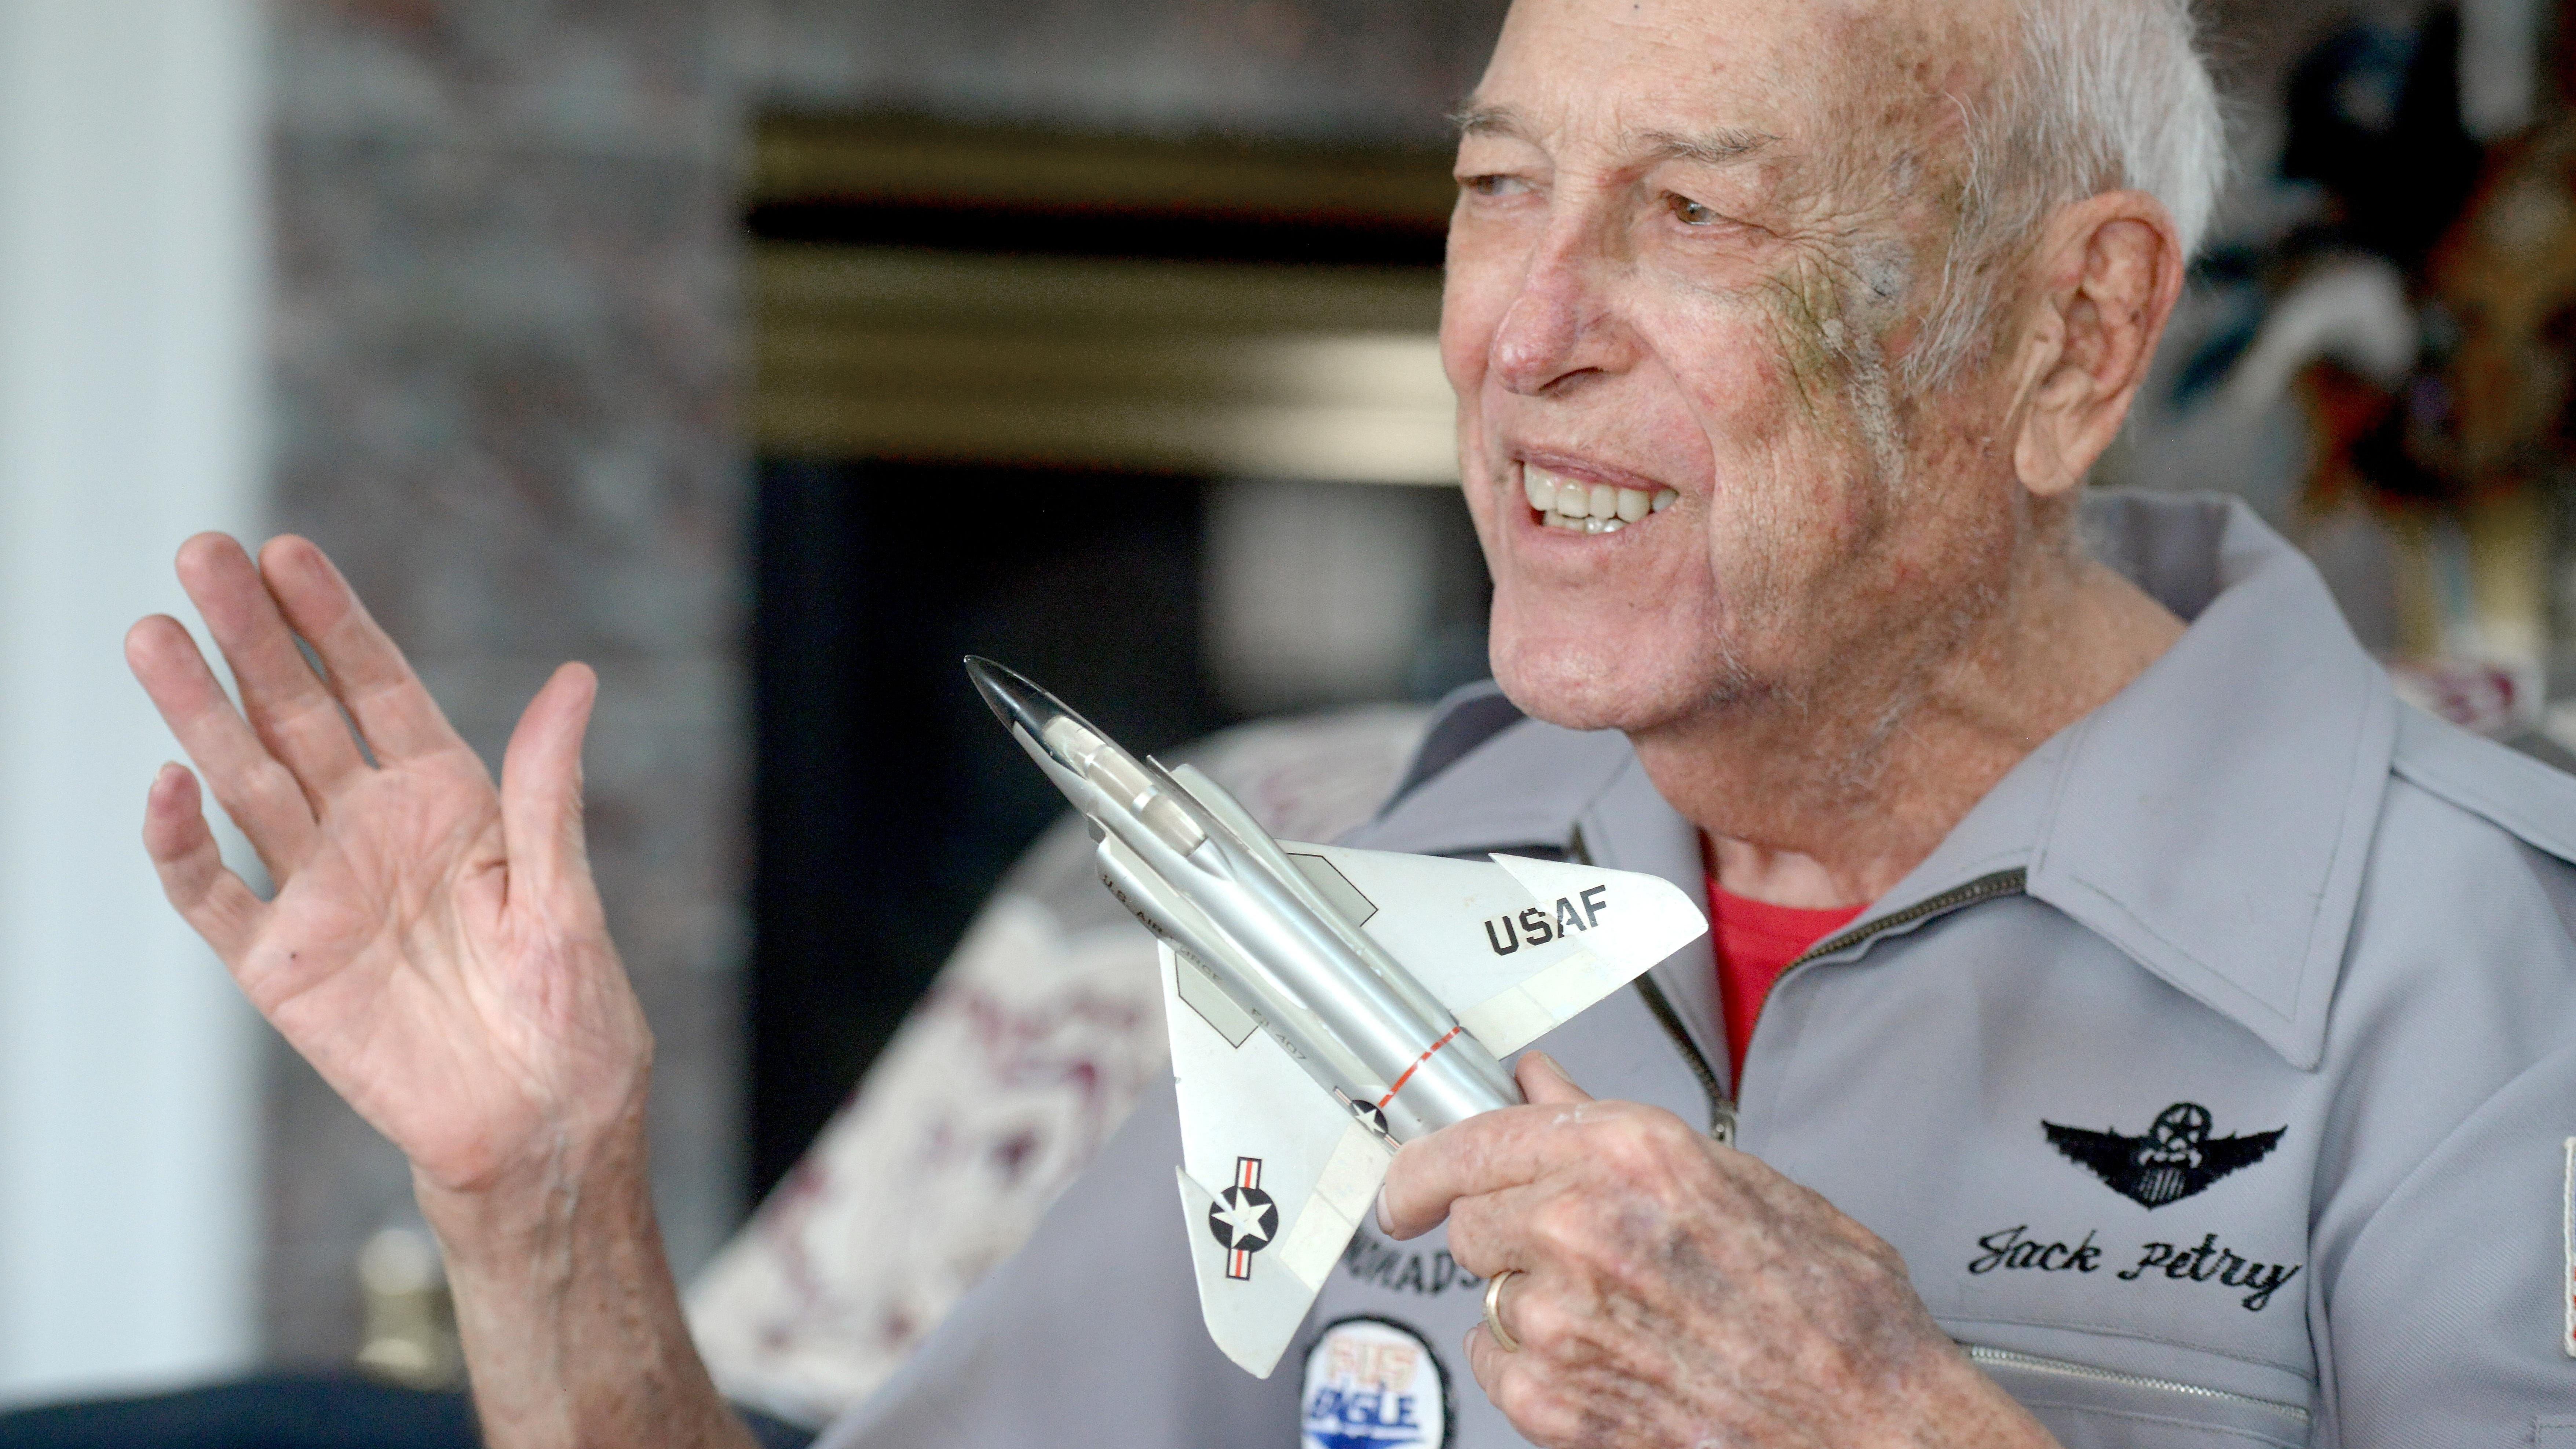 Great fighter pilot, Eglin 33rd commander Jack Petry remembered